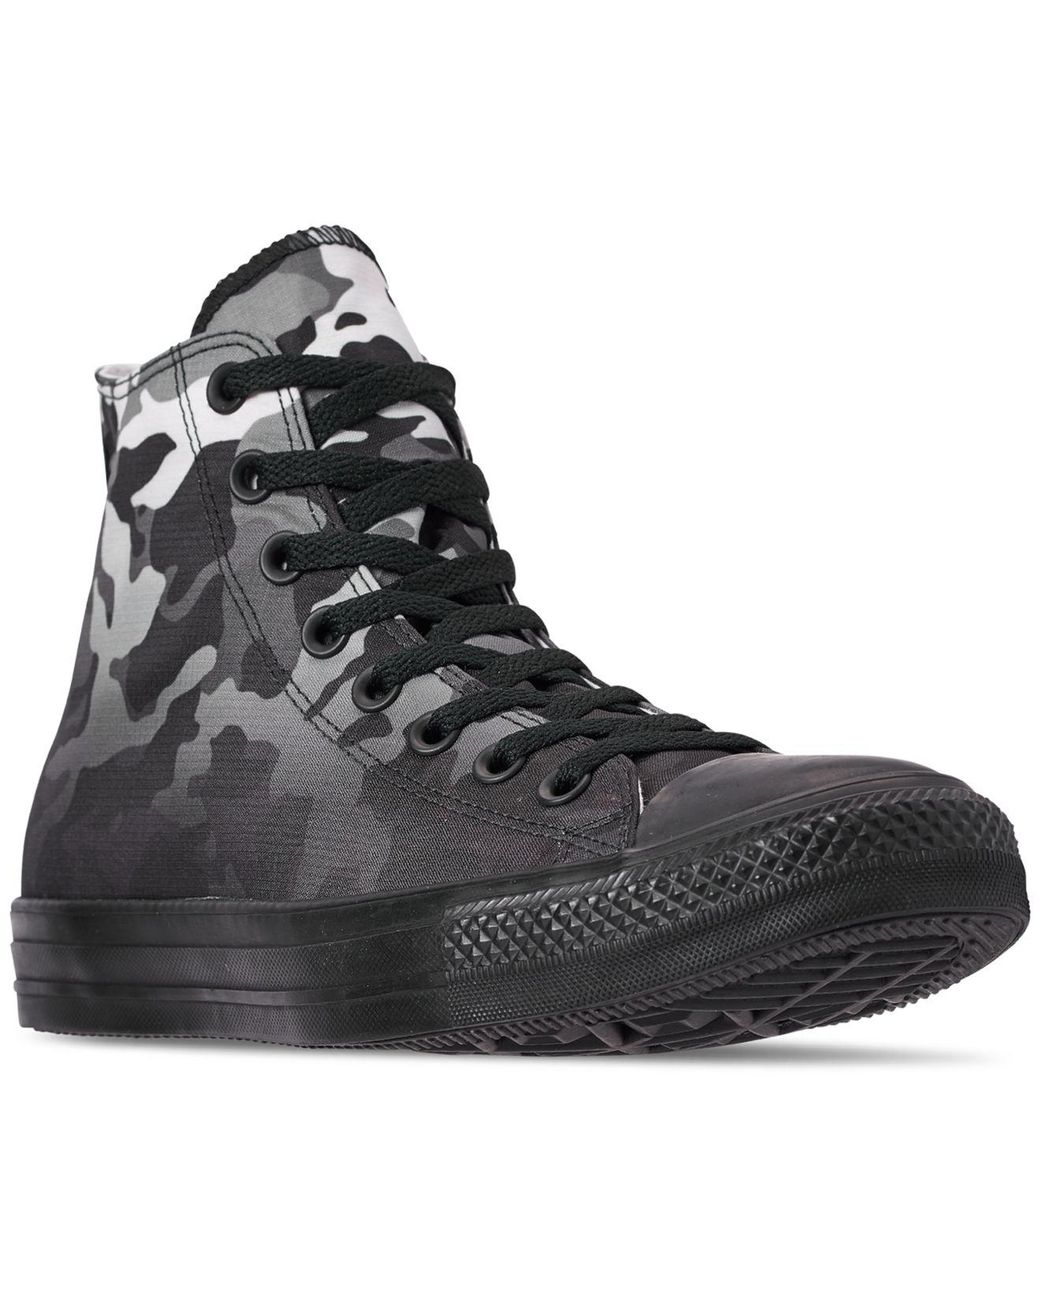 04d851be9959 Lyst - Converse Chuck Taylor All Star Gradient Camo High Top Casual Sneakers  From Finish Line in Black for Men - Save 38%